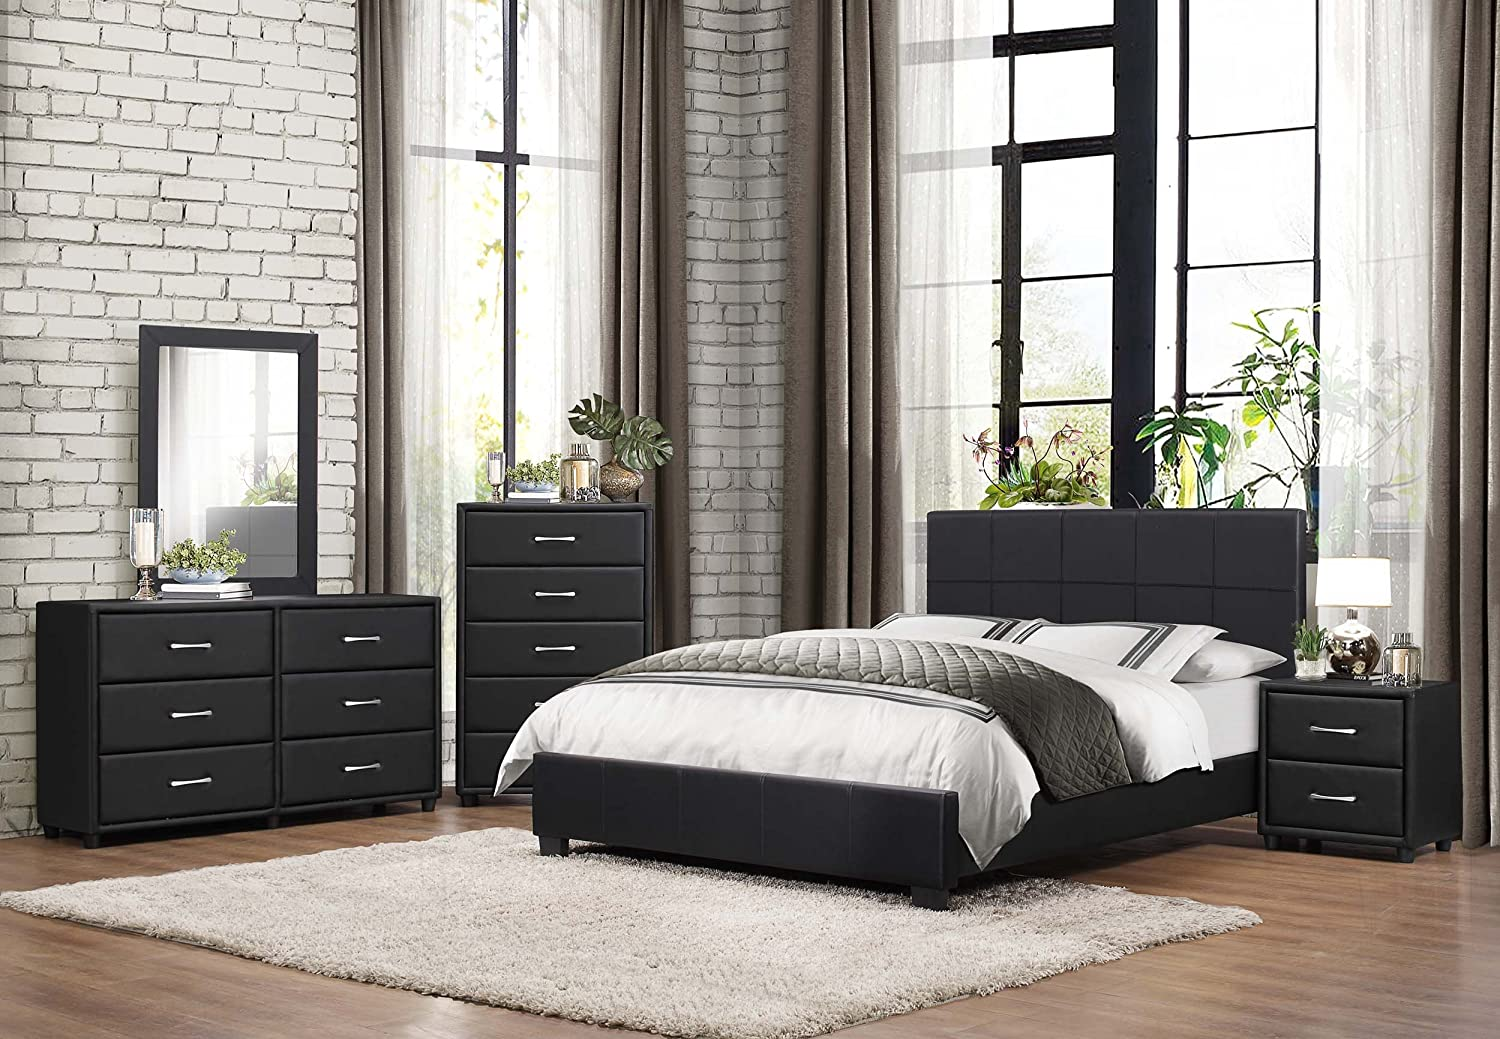 Amazon.com: Homelegance Upholstered Cal King Platform Bed Frame W/  Footboard And Headboard Faux Leather, Black: Kitchen U0026 Dining